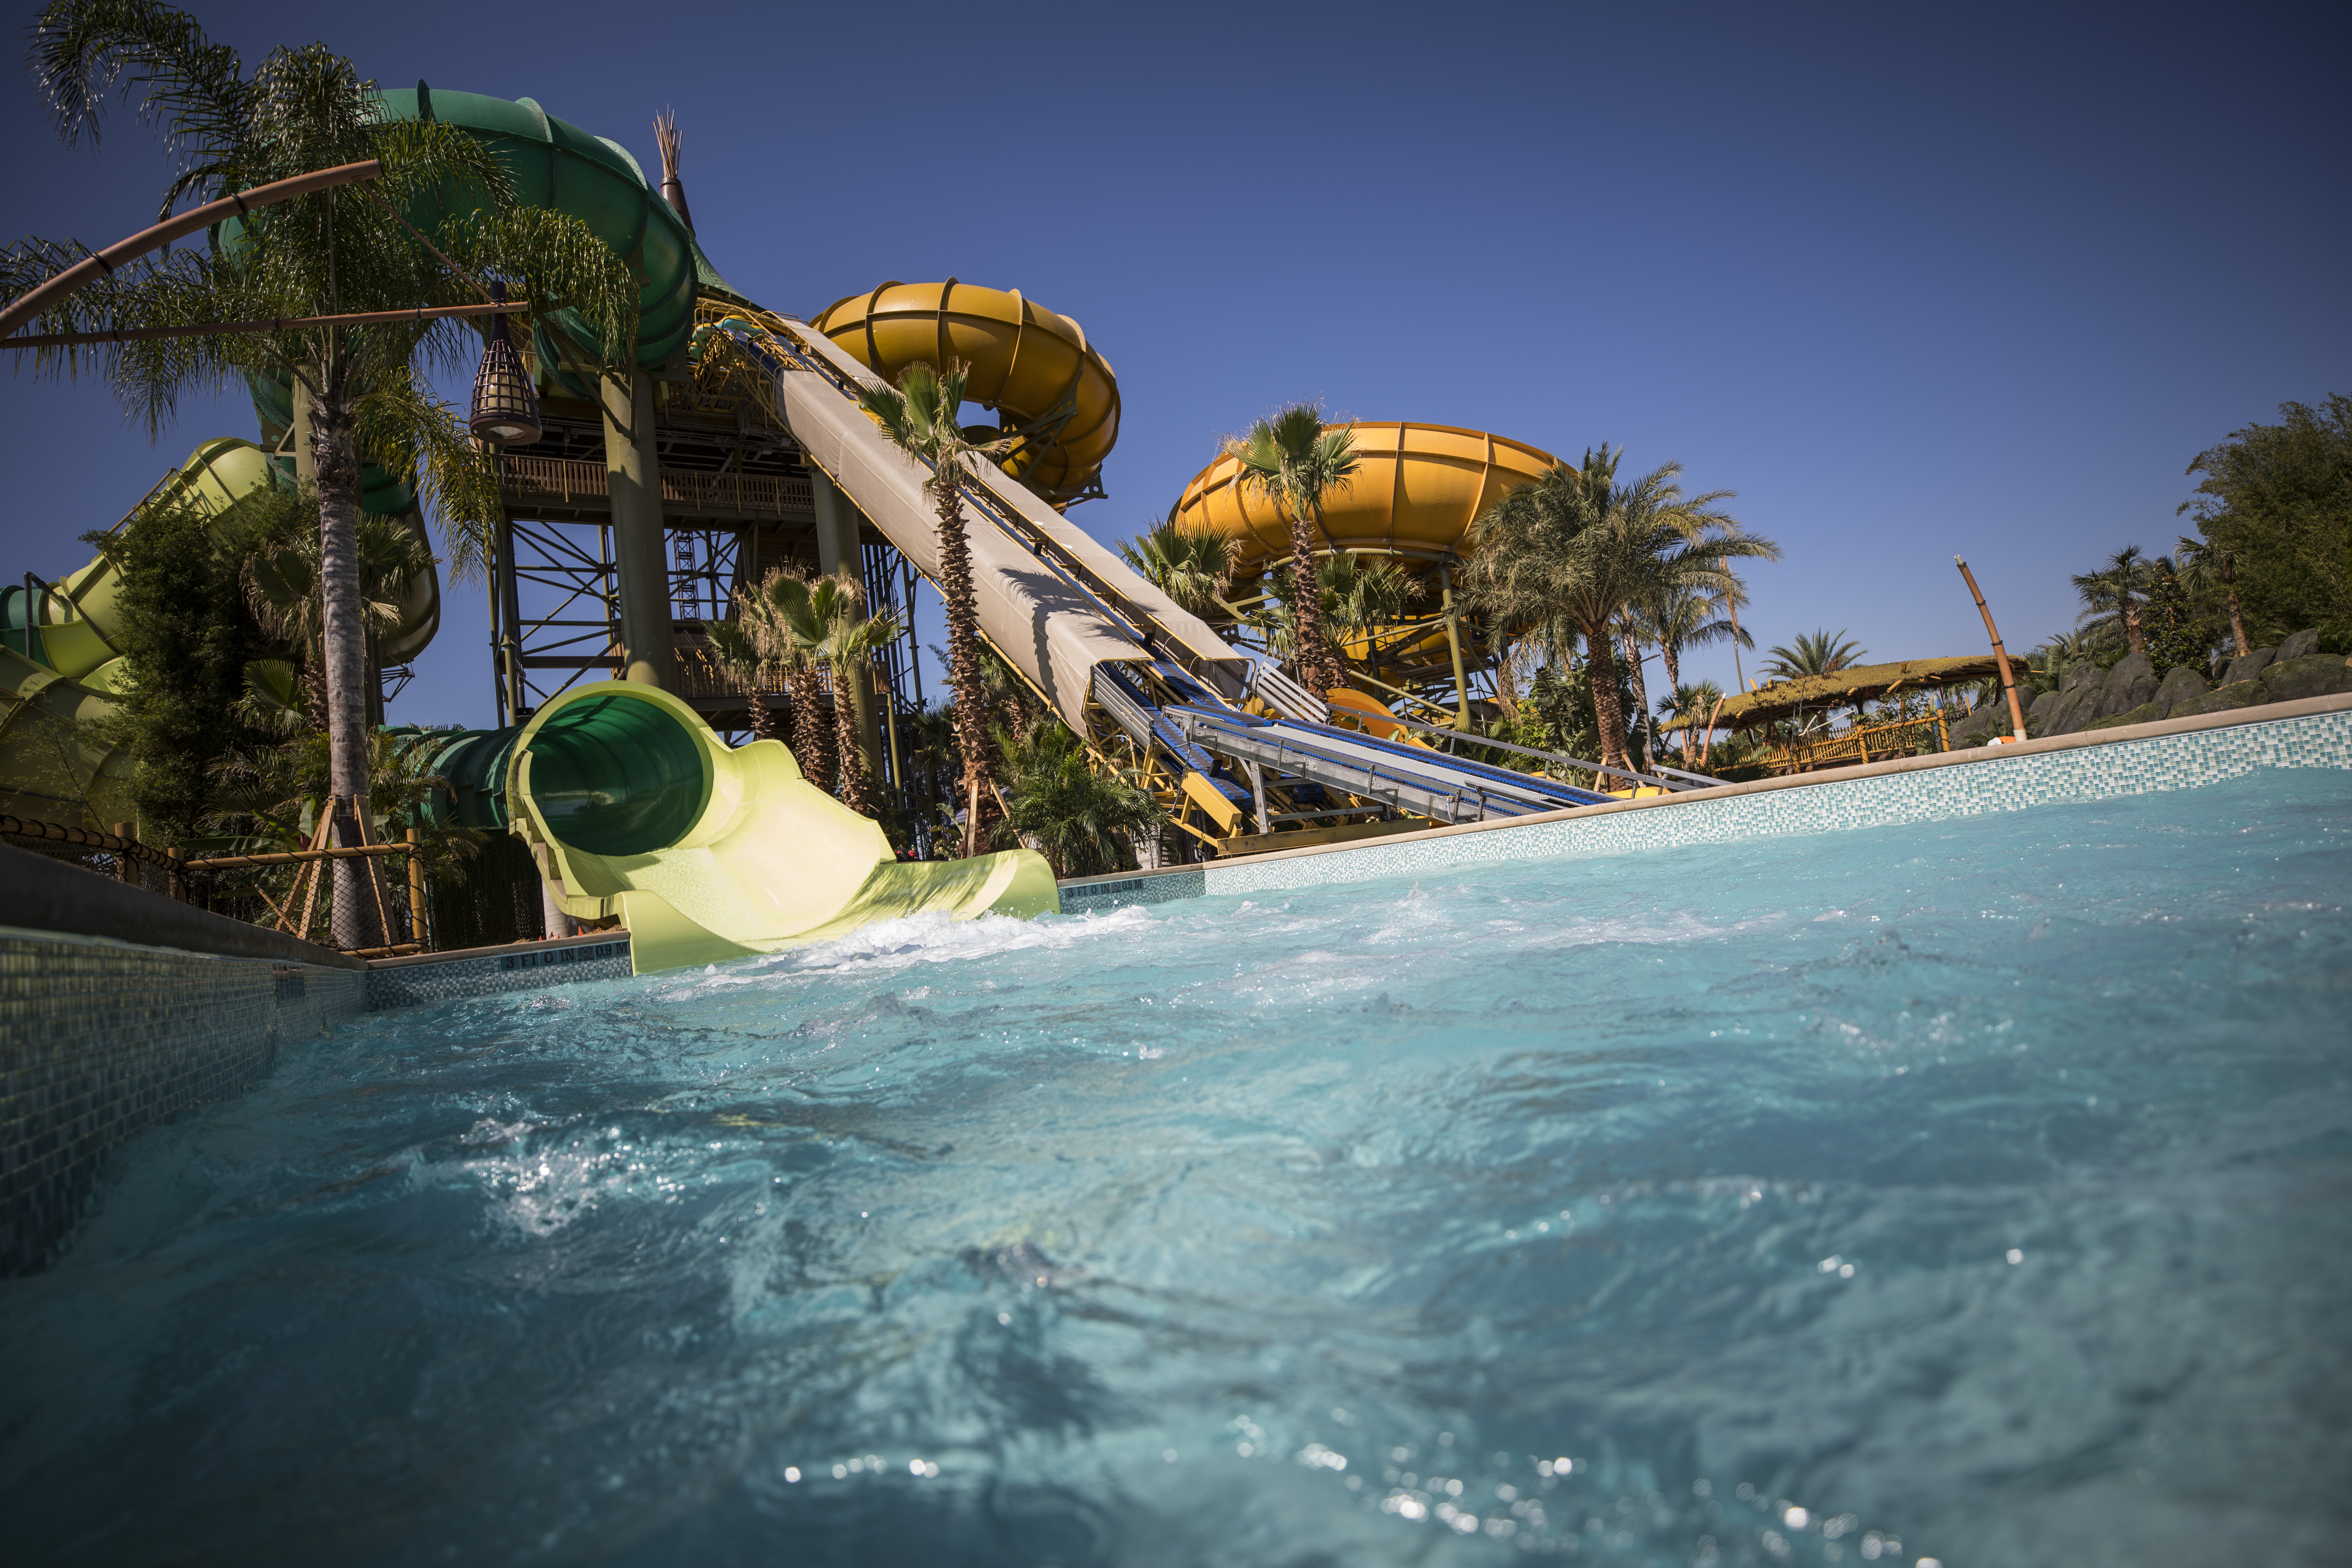 Publicity Volcano Bay CNN 050817, Universal's Volcano Bay, VB, UVB, Project 533, Water Park, Water Rides, Universal Orlando Resort, UOR, UO